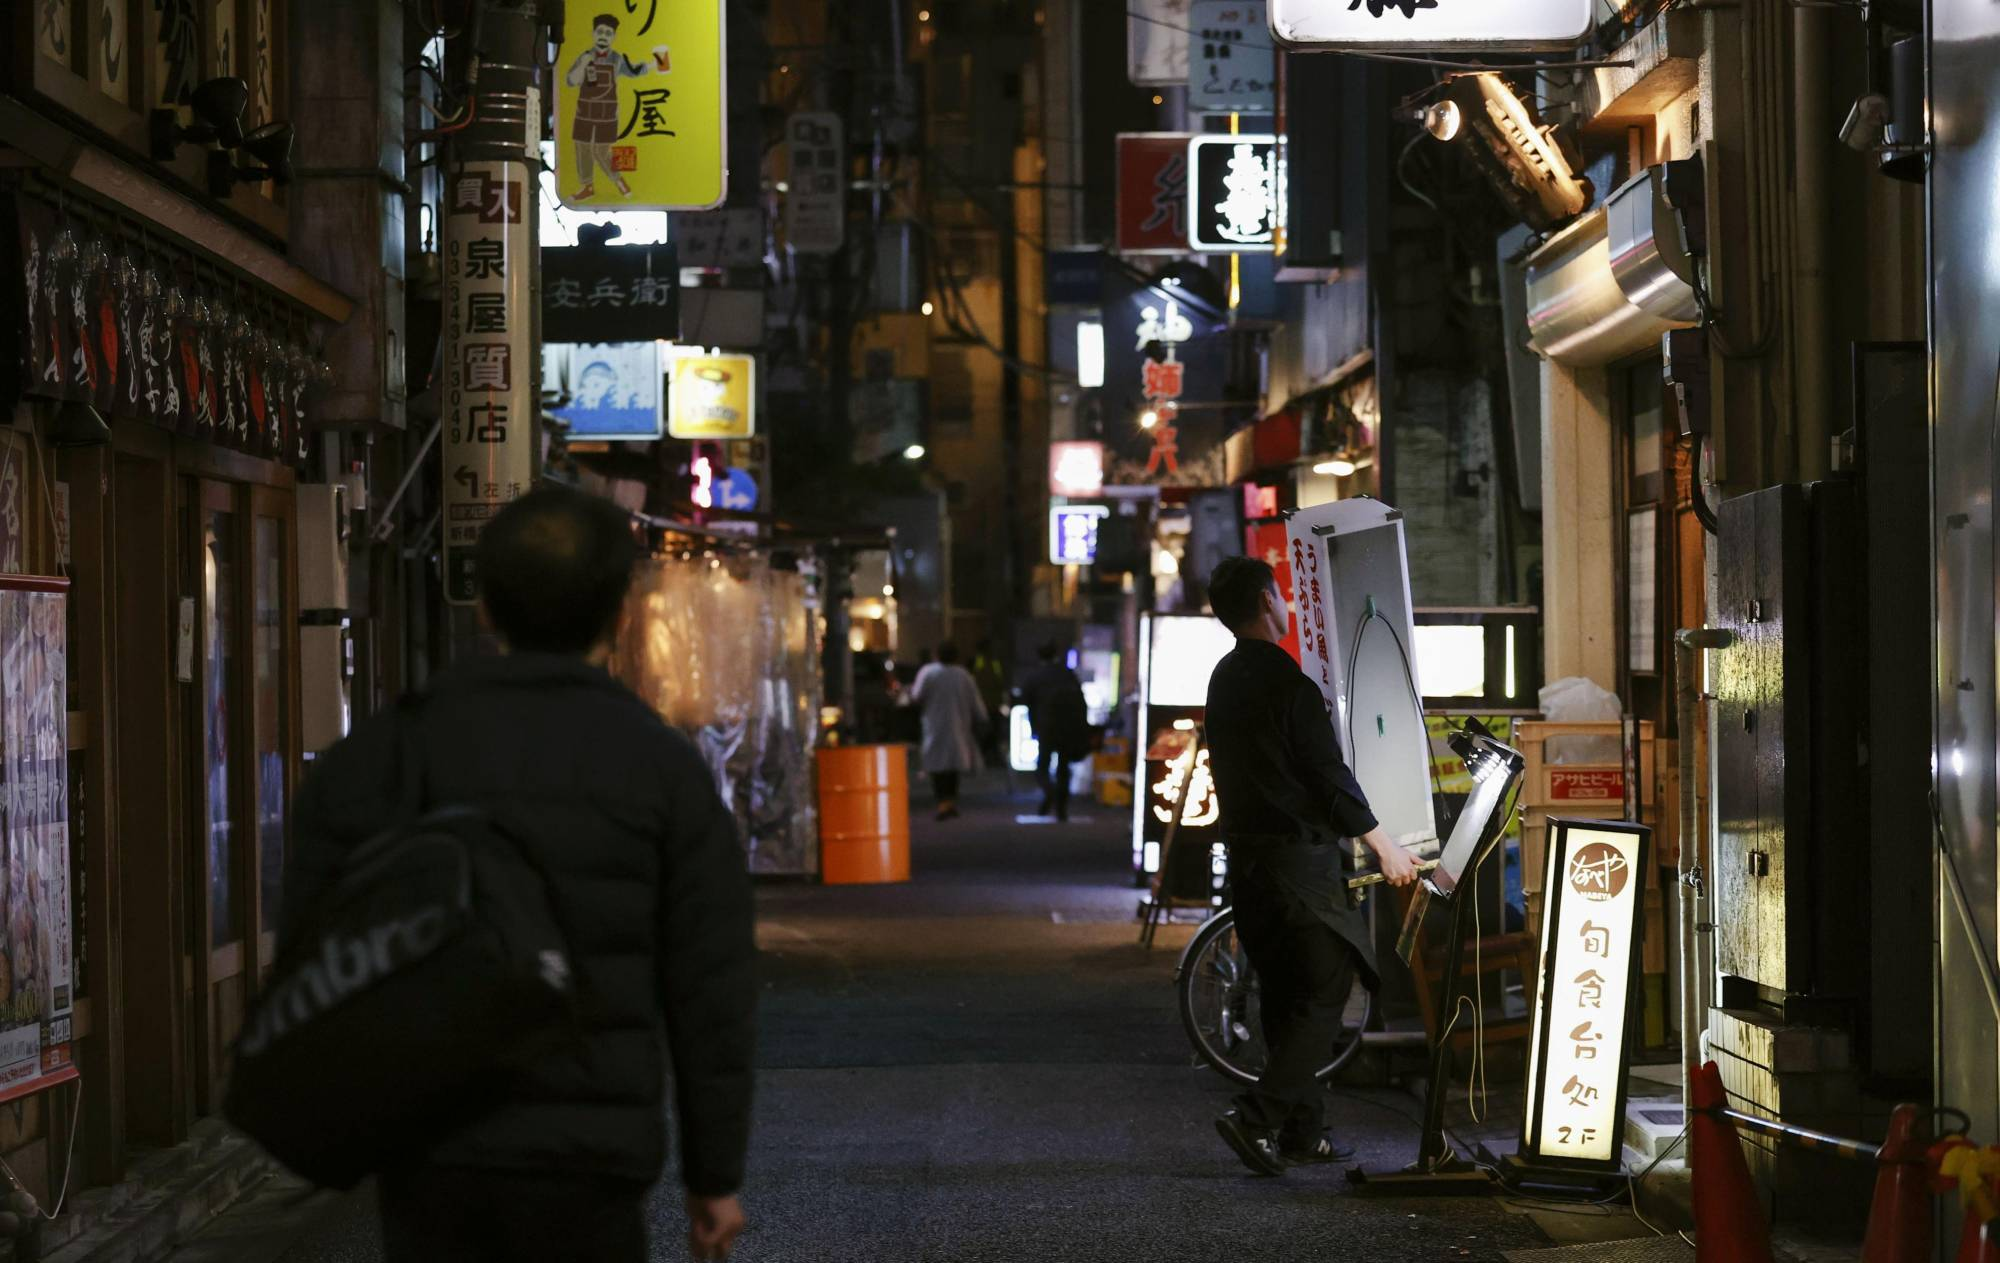 Few people are seen at restaurants and bars in Tokyo's Shimbashi district on March 3 as the Tokyo area remains under a state of emergency. | KYODO